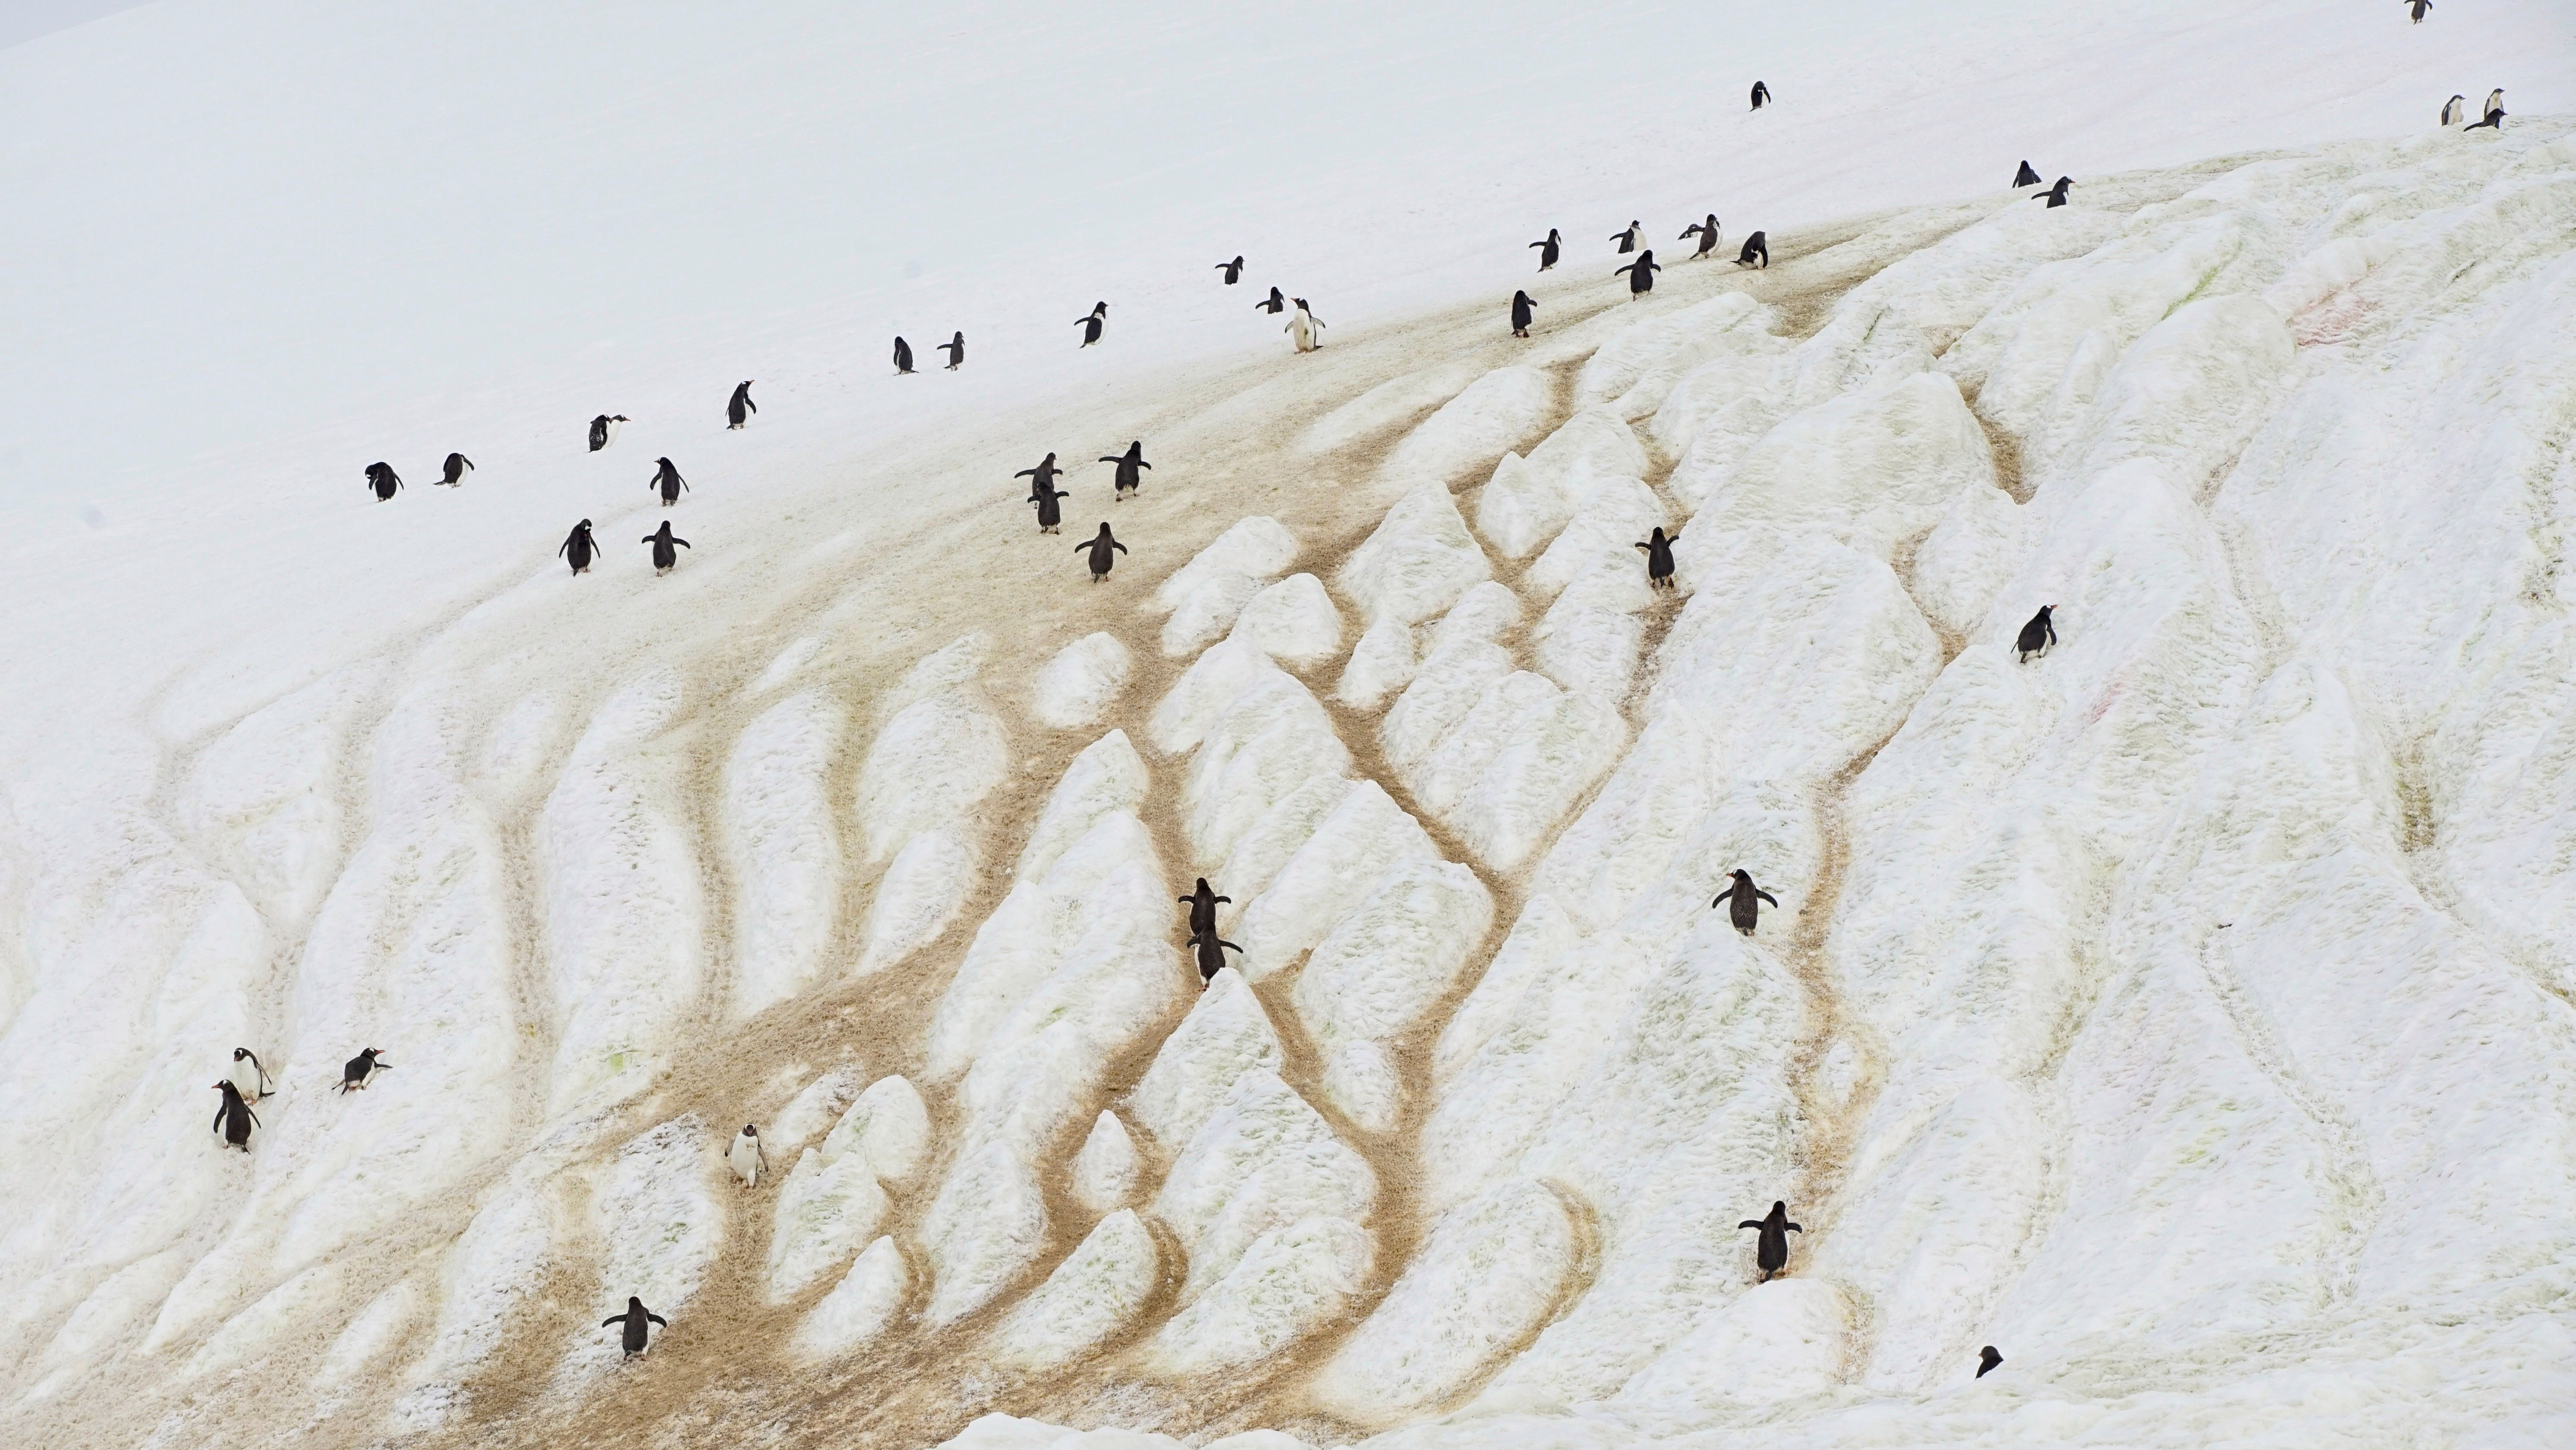 In the place where West and East Antarctic ice sheets meet is one of the least-explored regions on Earth. This is a picture of penguins that are in Antarctica but not in that region. We just thought they were cool looking.